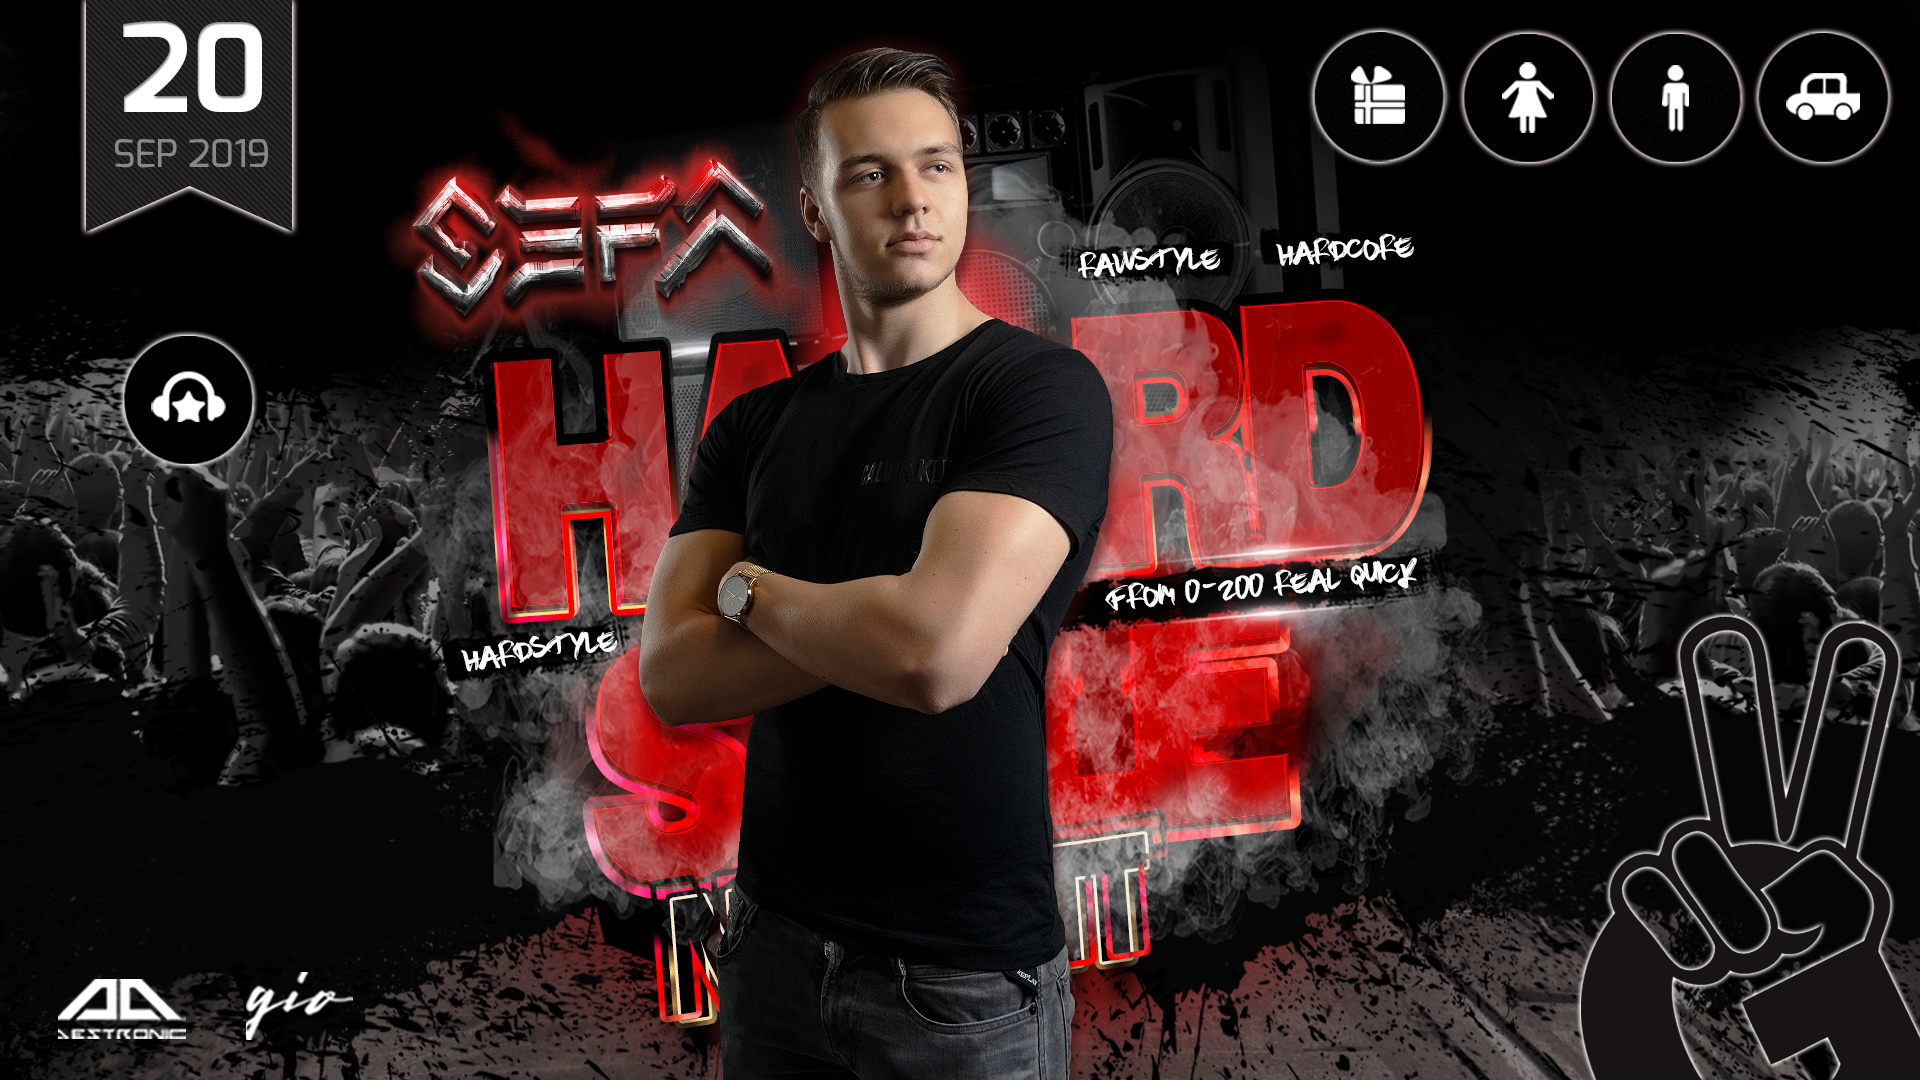 G2 Club Diskothek pres. SEFA | Int. Hardcore & Frenchcore Act